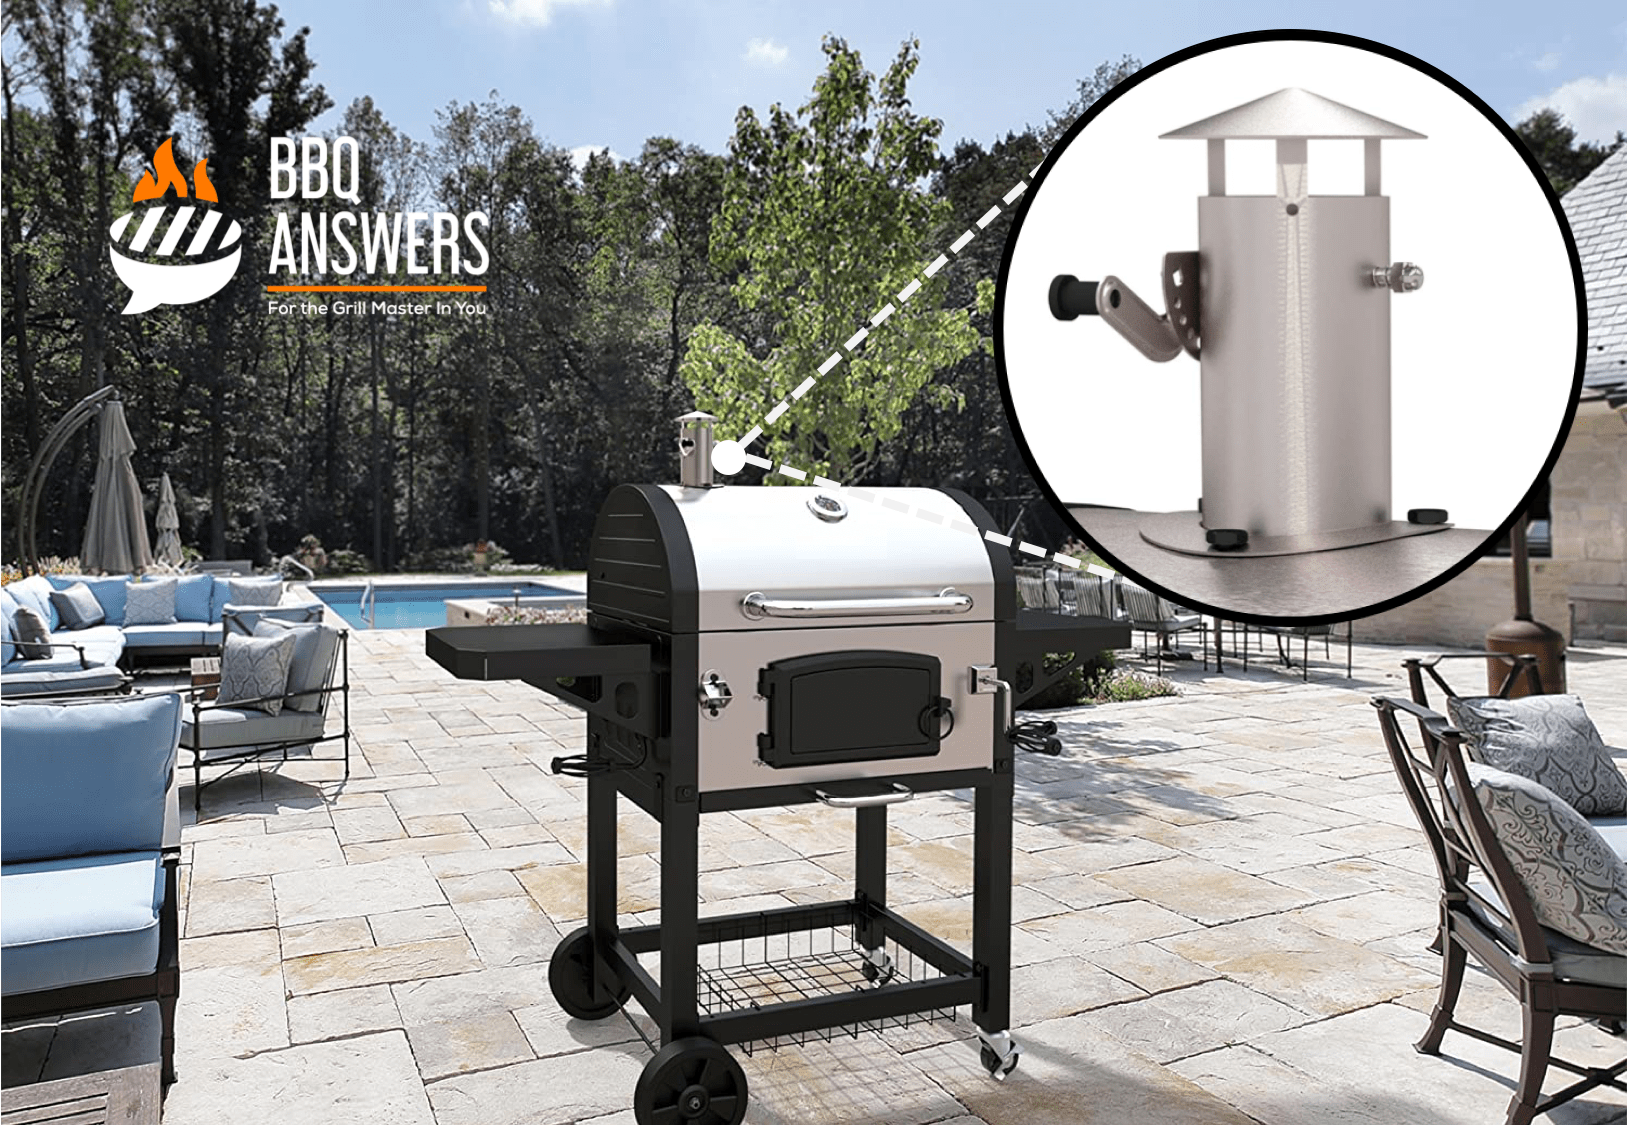 Adjustable Vents/ Dampers | Charcoal Grills | BBQanswers